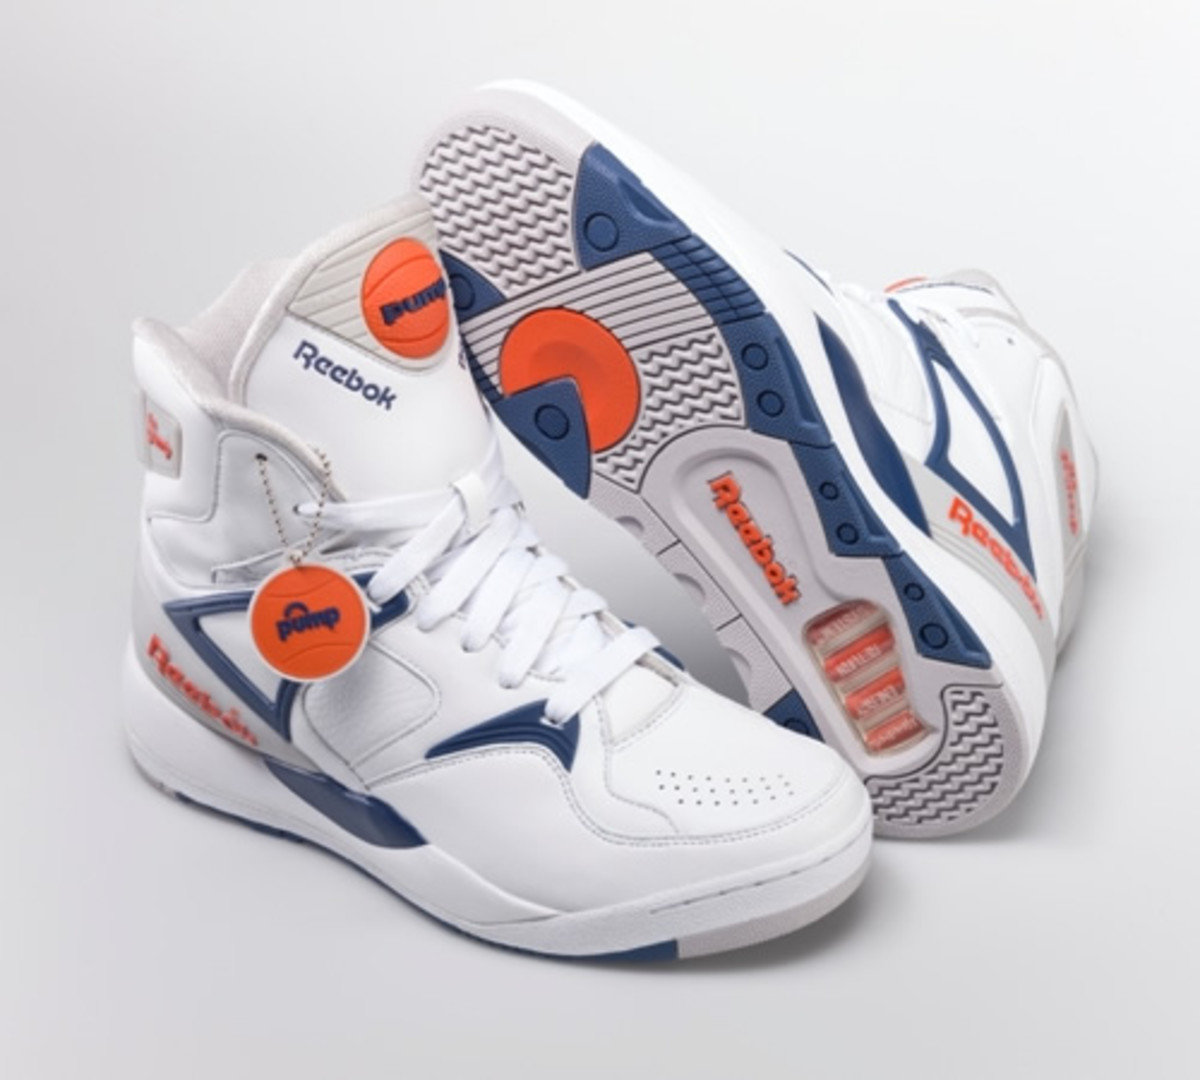 ... and jump higher is celebrating its 20th anniversary this year. To mark  the occasion Reebok is releasing Limited Edition styles of its infamous Pump  ... 15e2b2e9c4